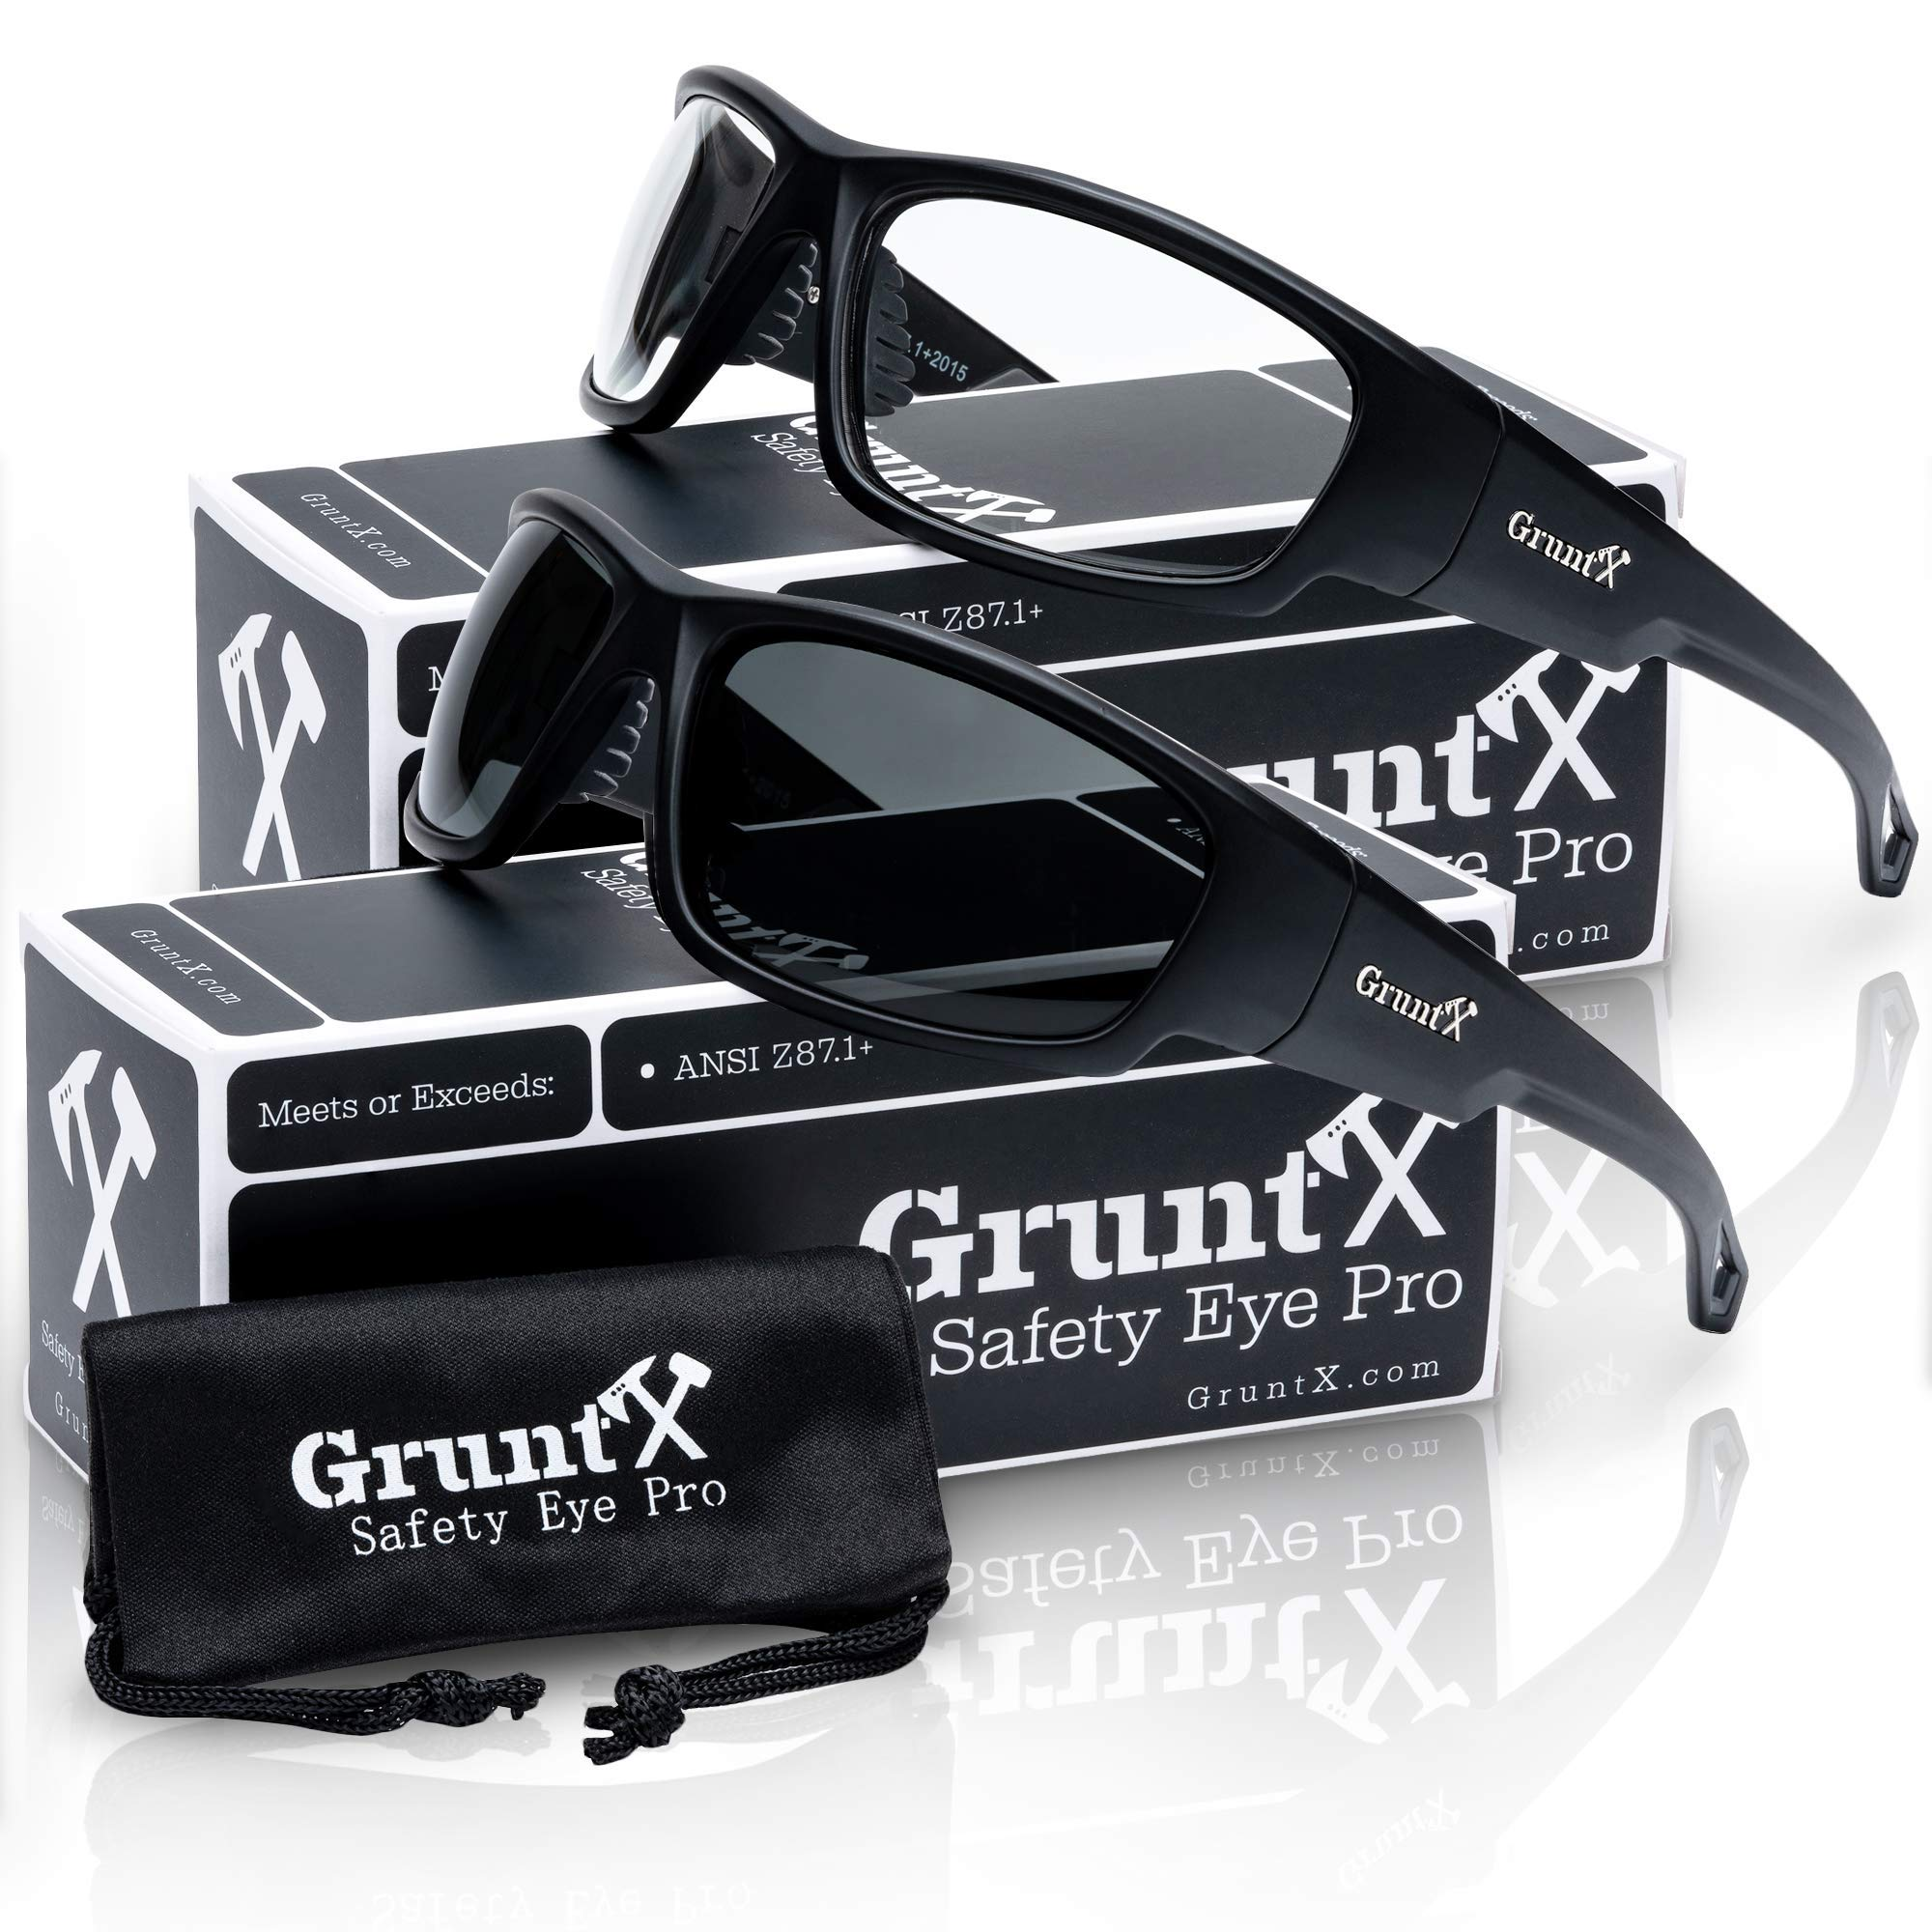 GruntX 2-Pack Ballistic Safety Sunglasses for Men - Smoked Polarized & Clear - Meets ANSI z87.1+ - Anti Scratch and UV Protection - Perfect for: Shooting, Construction, and Outdoor Sports by GruntX